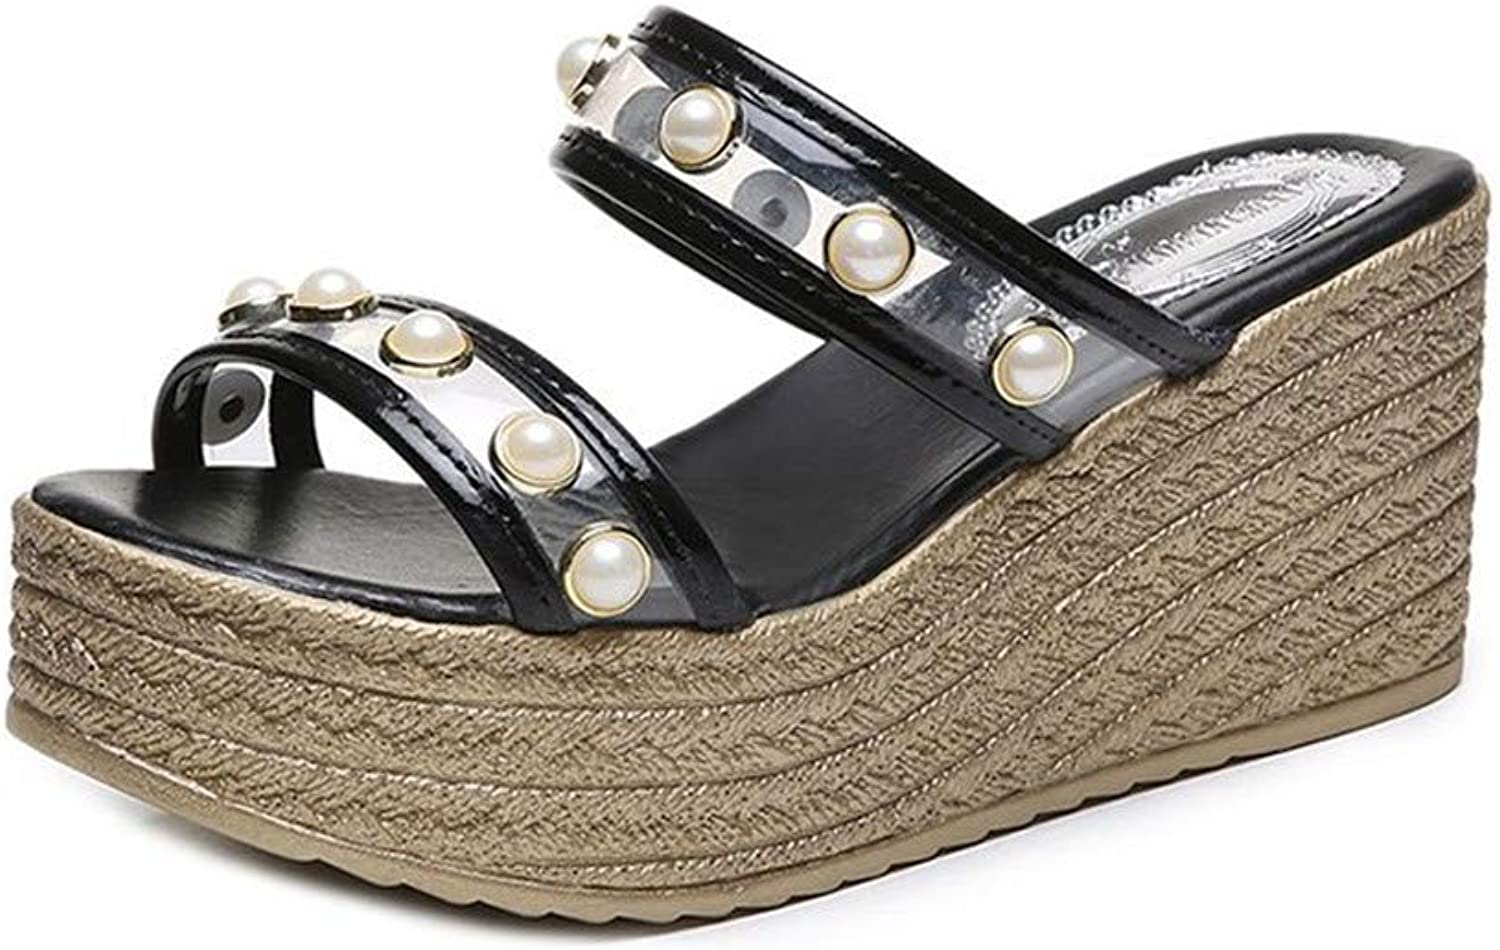 Sandals for Women Espadrille Platform Straw Wedge Ankle Strap Open Toe shoes Summer Casual Peep Toe